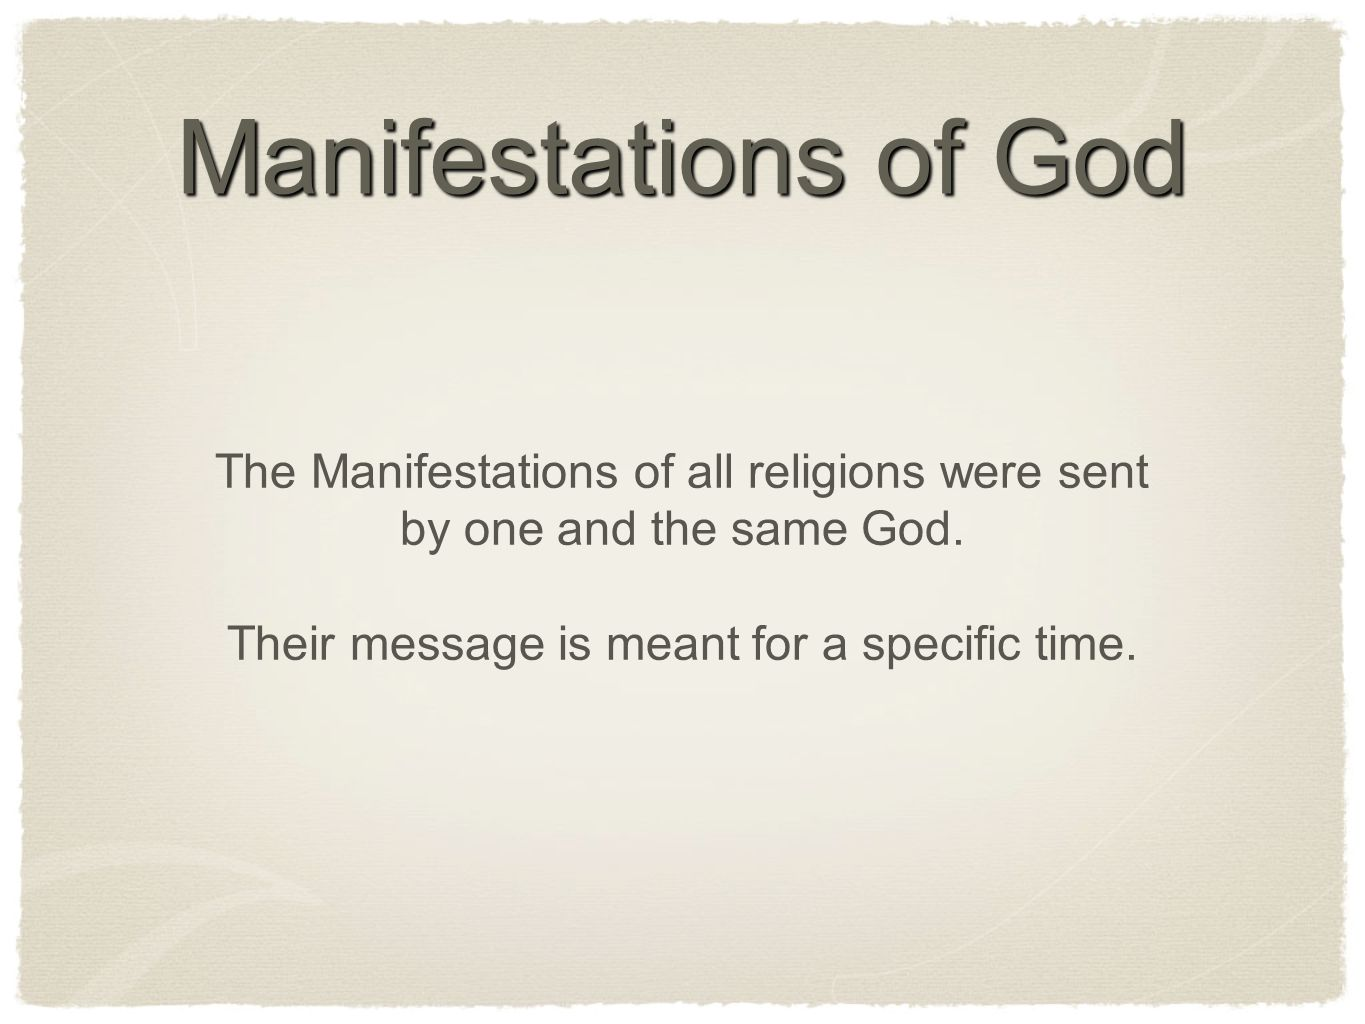 Manifestations of God The Manifestations of all religions were sent by one and the same God.